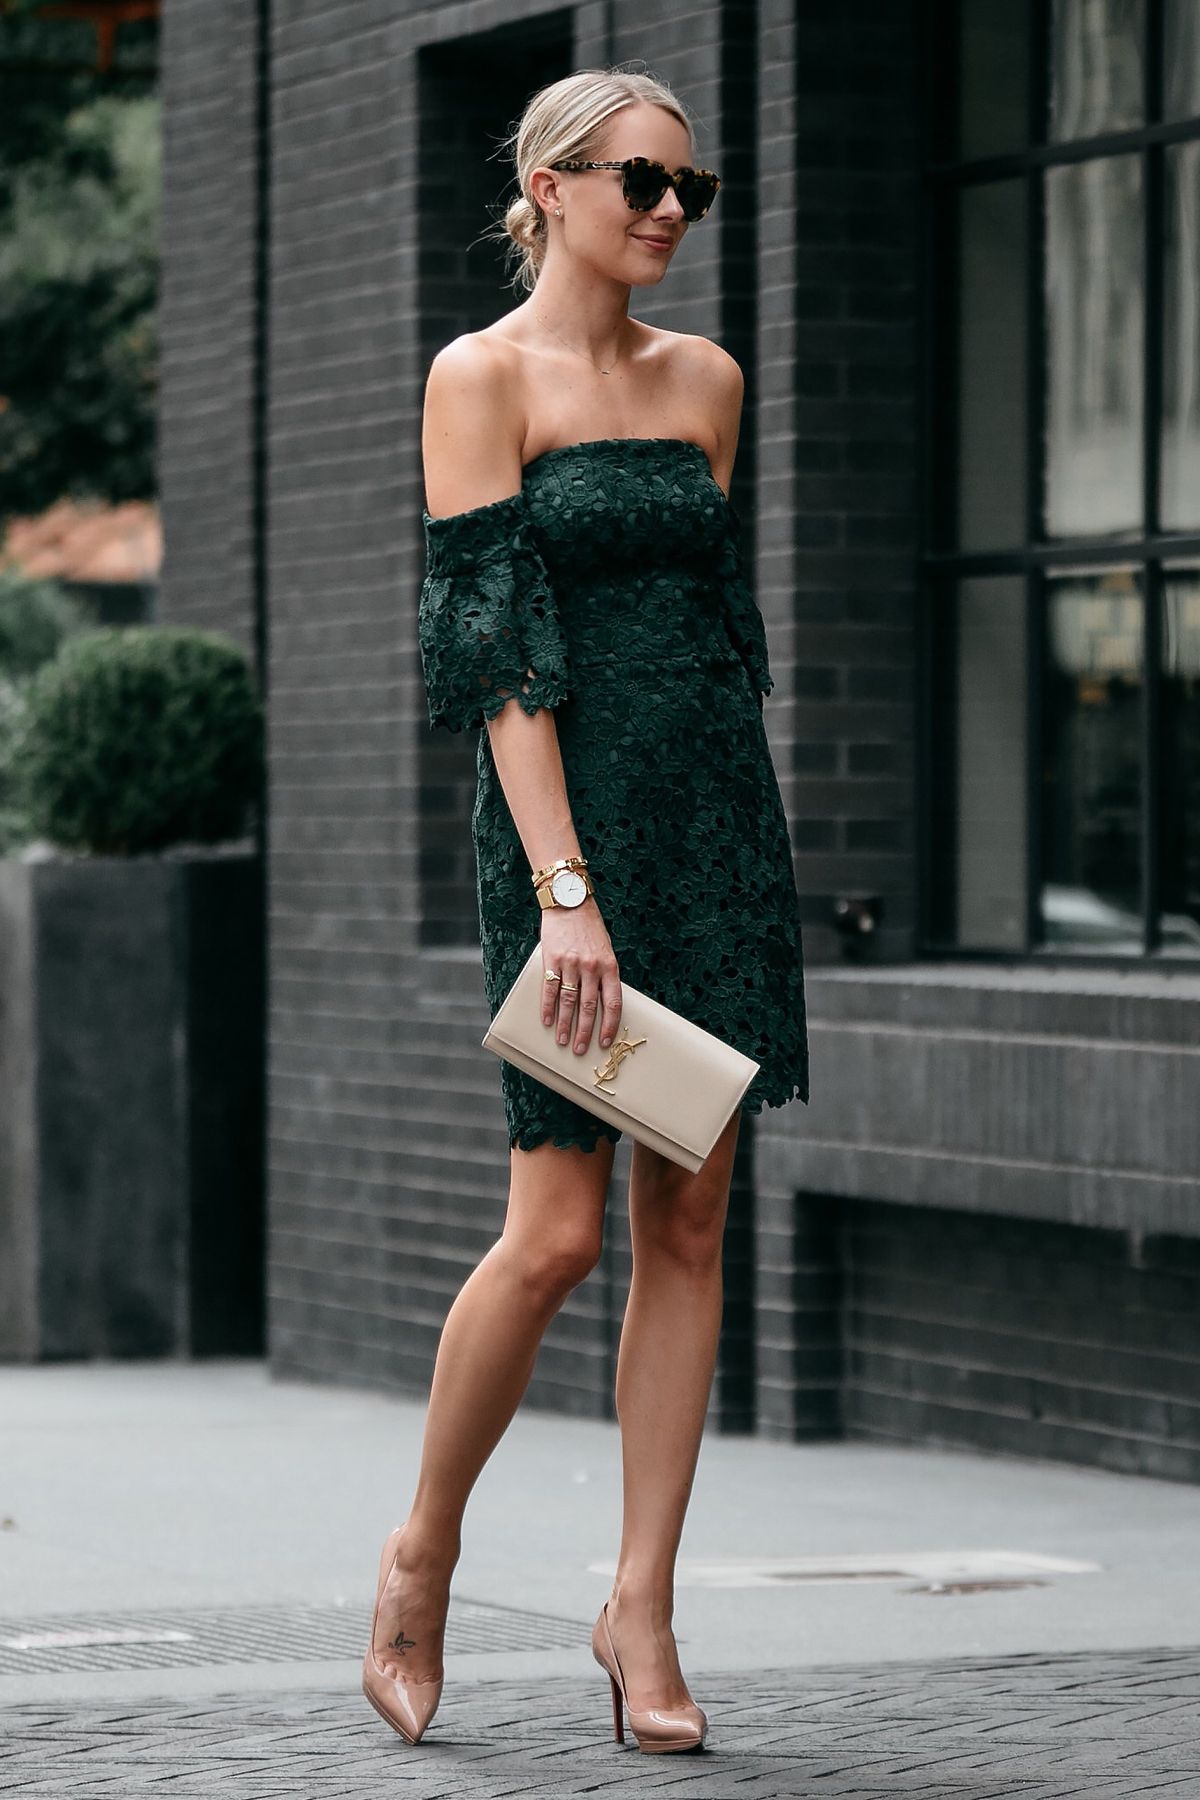 Blonde Woman Wearing Club Monaco Off-the-Shoulder Green Lace Dress Saint Laurent Monogram Clutch Christian Louboutin Nude Pumps Fashion Jackson Dallas Blogger Fashion Blogger Street Style